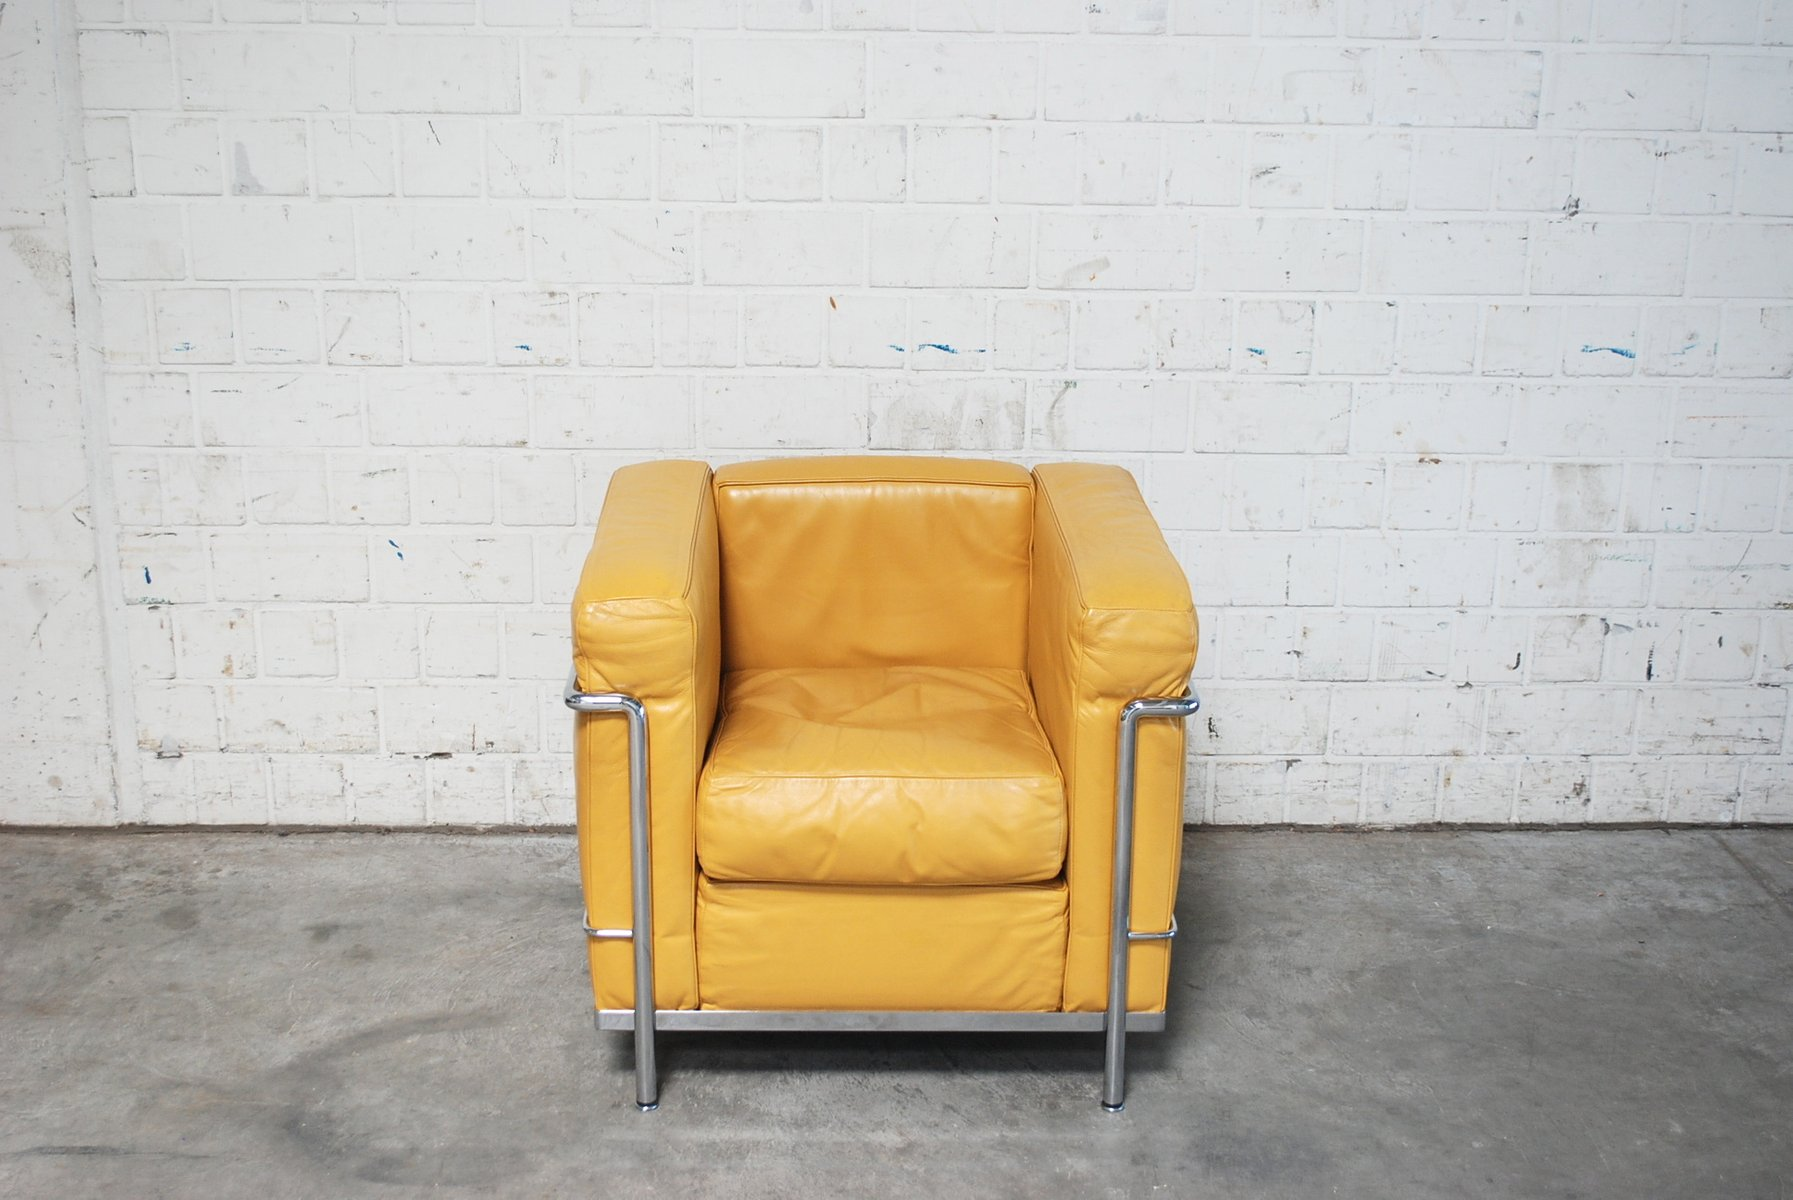 vintage yellow model lc leather chair by le corbusier for cassina  - vintage yellow model lc leather chair by le corbusier for cassina